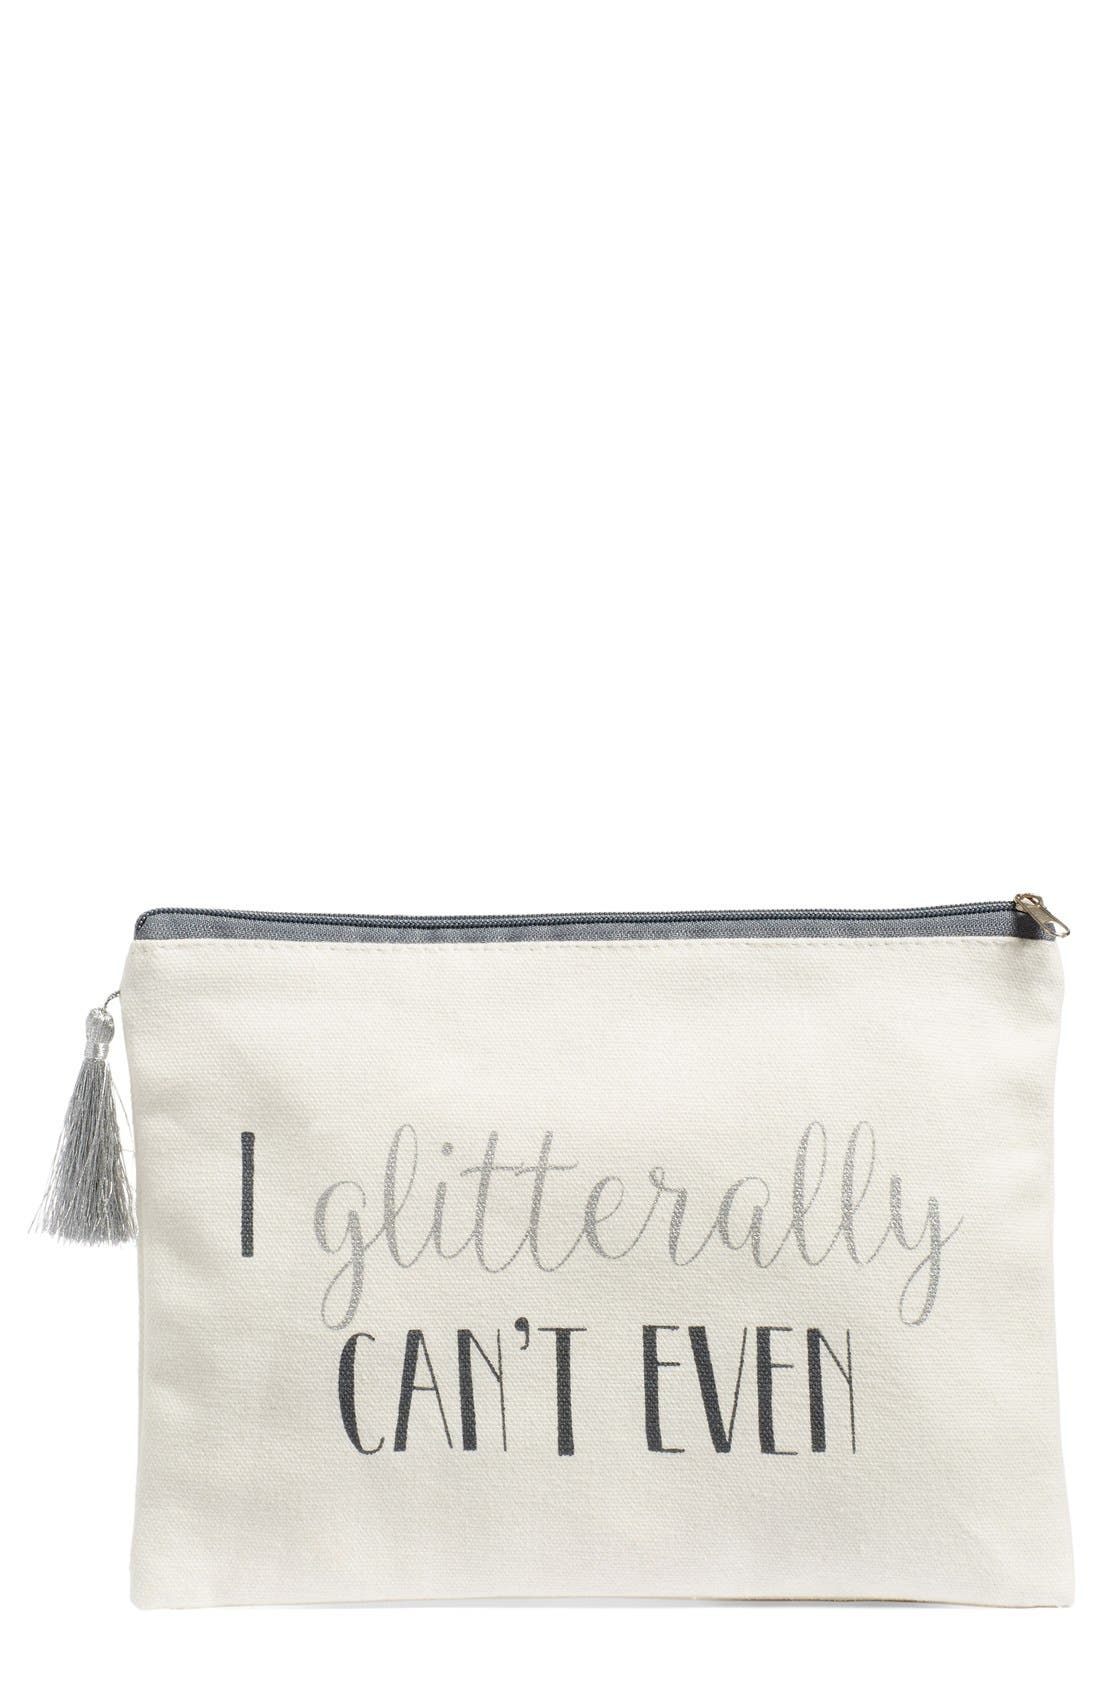 LEVTEX 'I Glitterally Can't Even' Zip Top Pouch, Main, color, 100